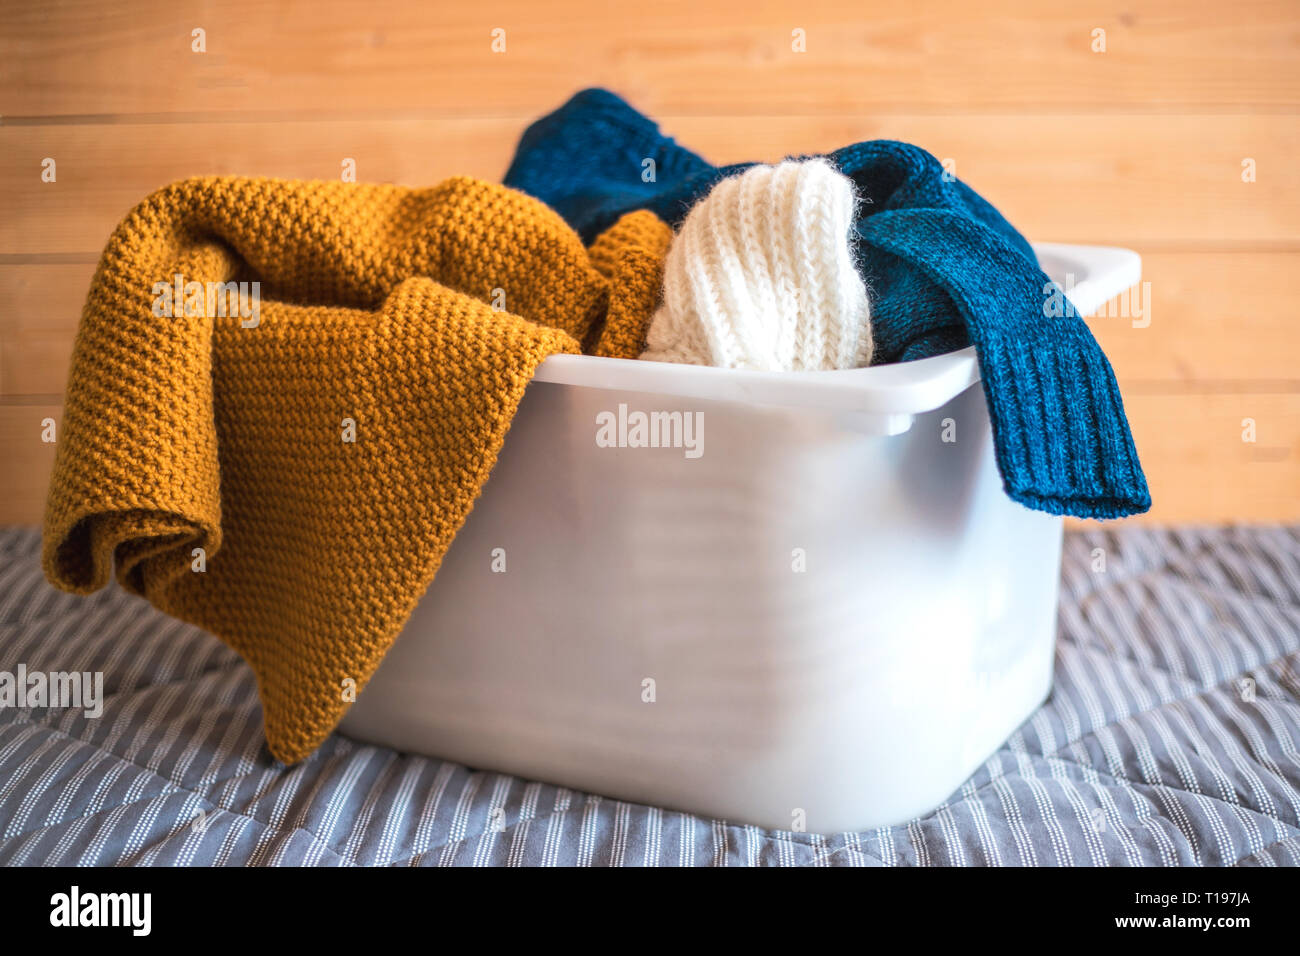 Container with laundry on sofa against wooden background. - Stock Image